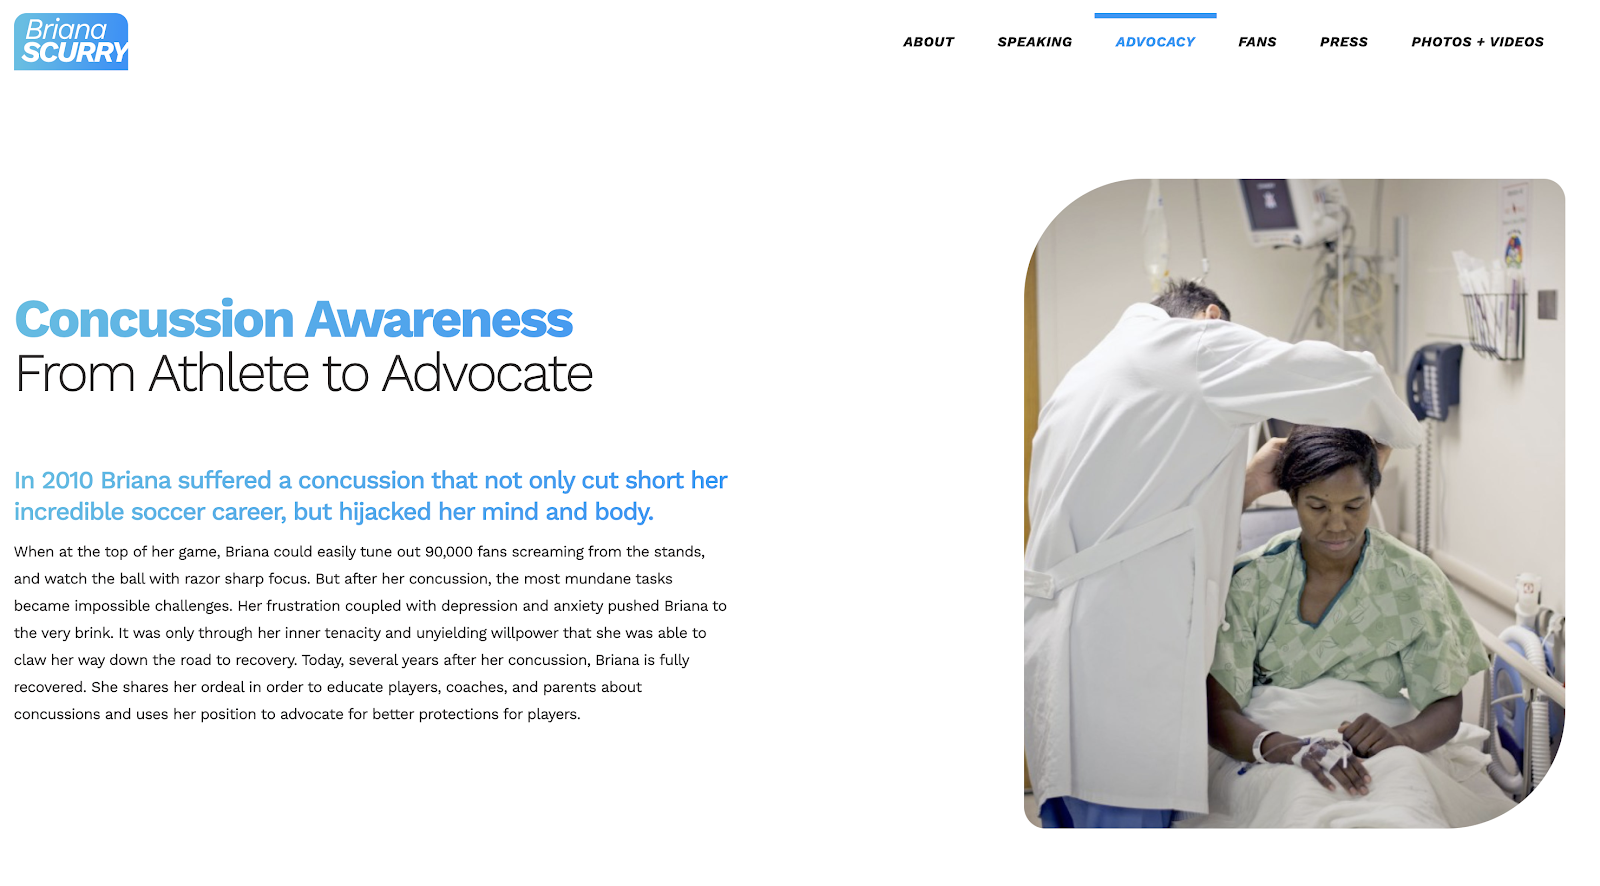 Hero section of the advocacy section of Briana Scurry's website, about concussion awareness.